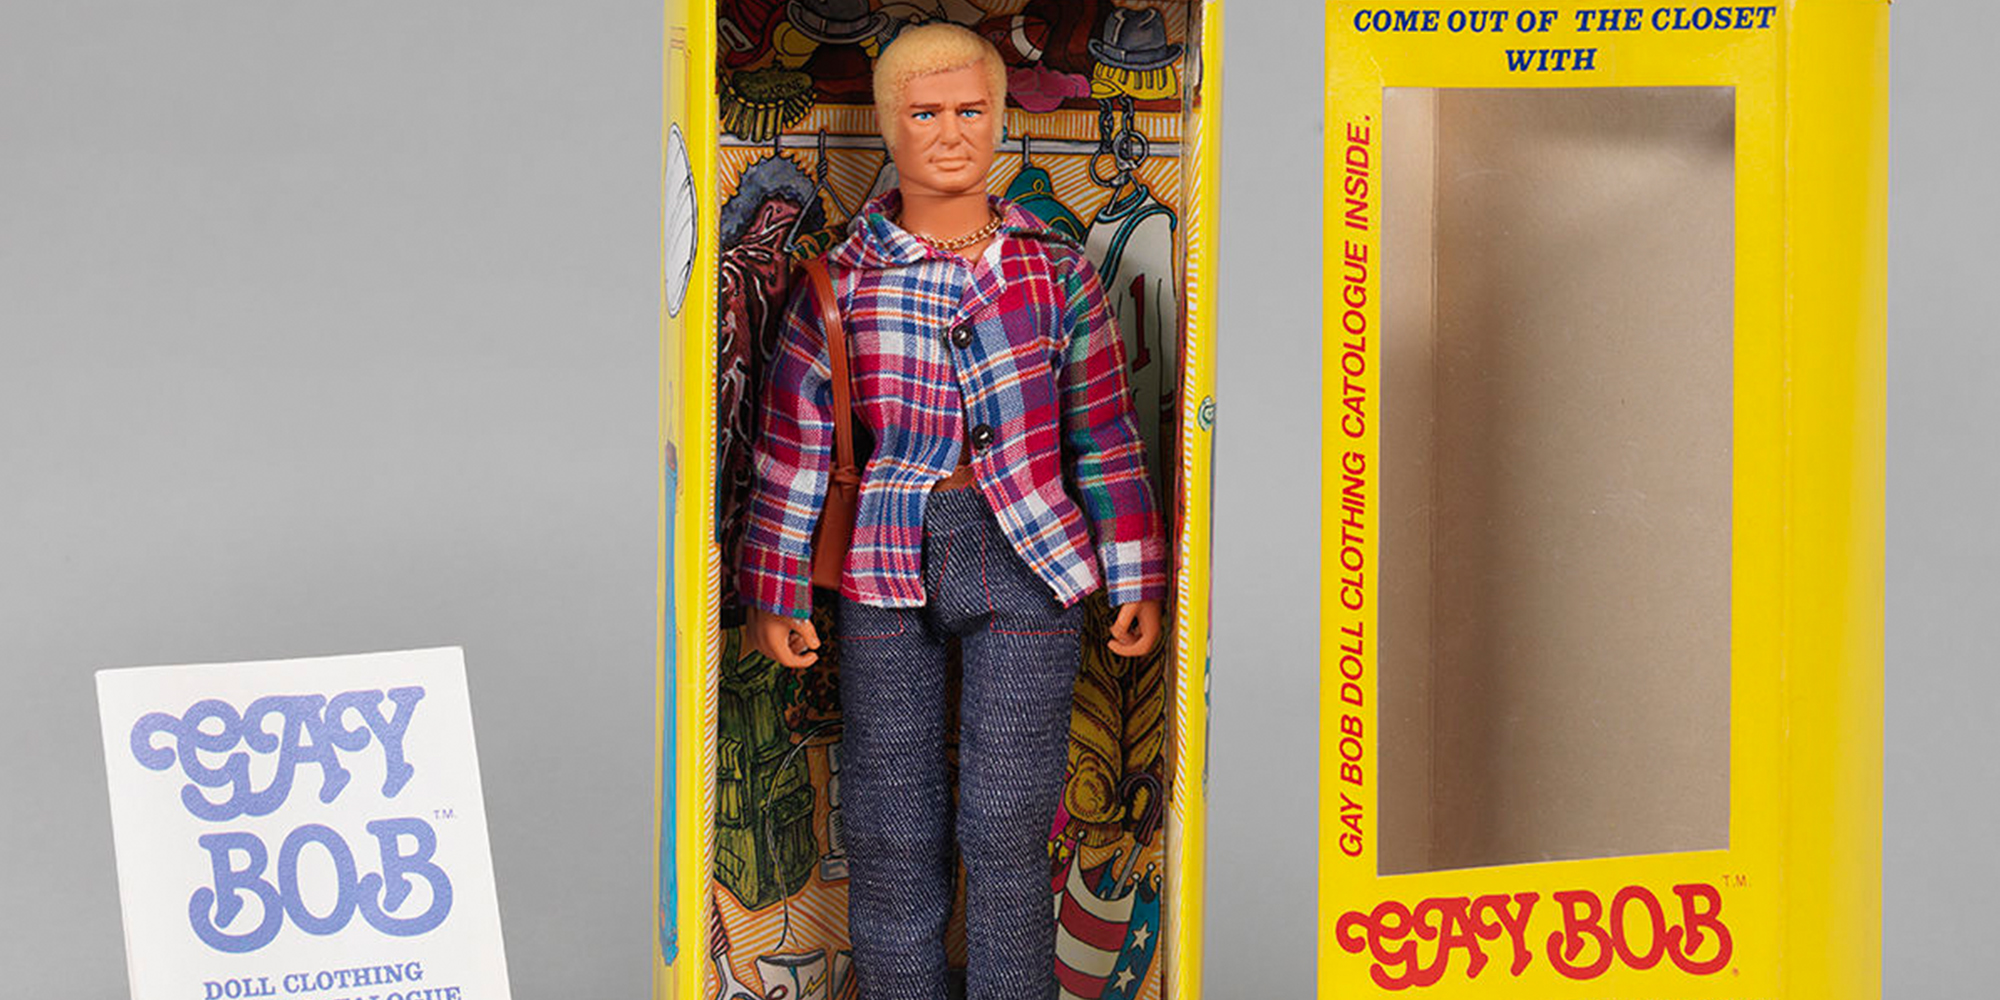 In 1978, the Anatomically Correct 'Gay Bob' Doll Delighted Gays and Freaked Out Homophobes